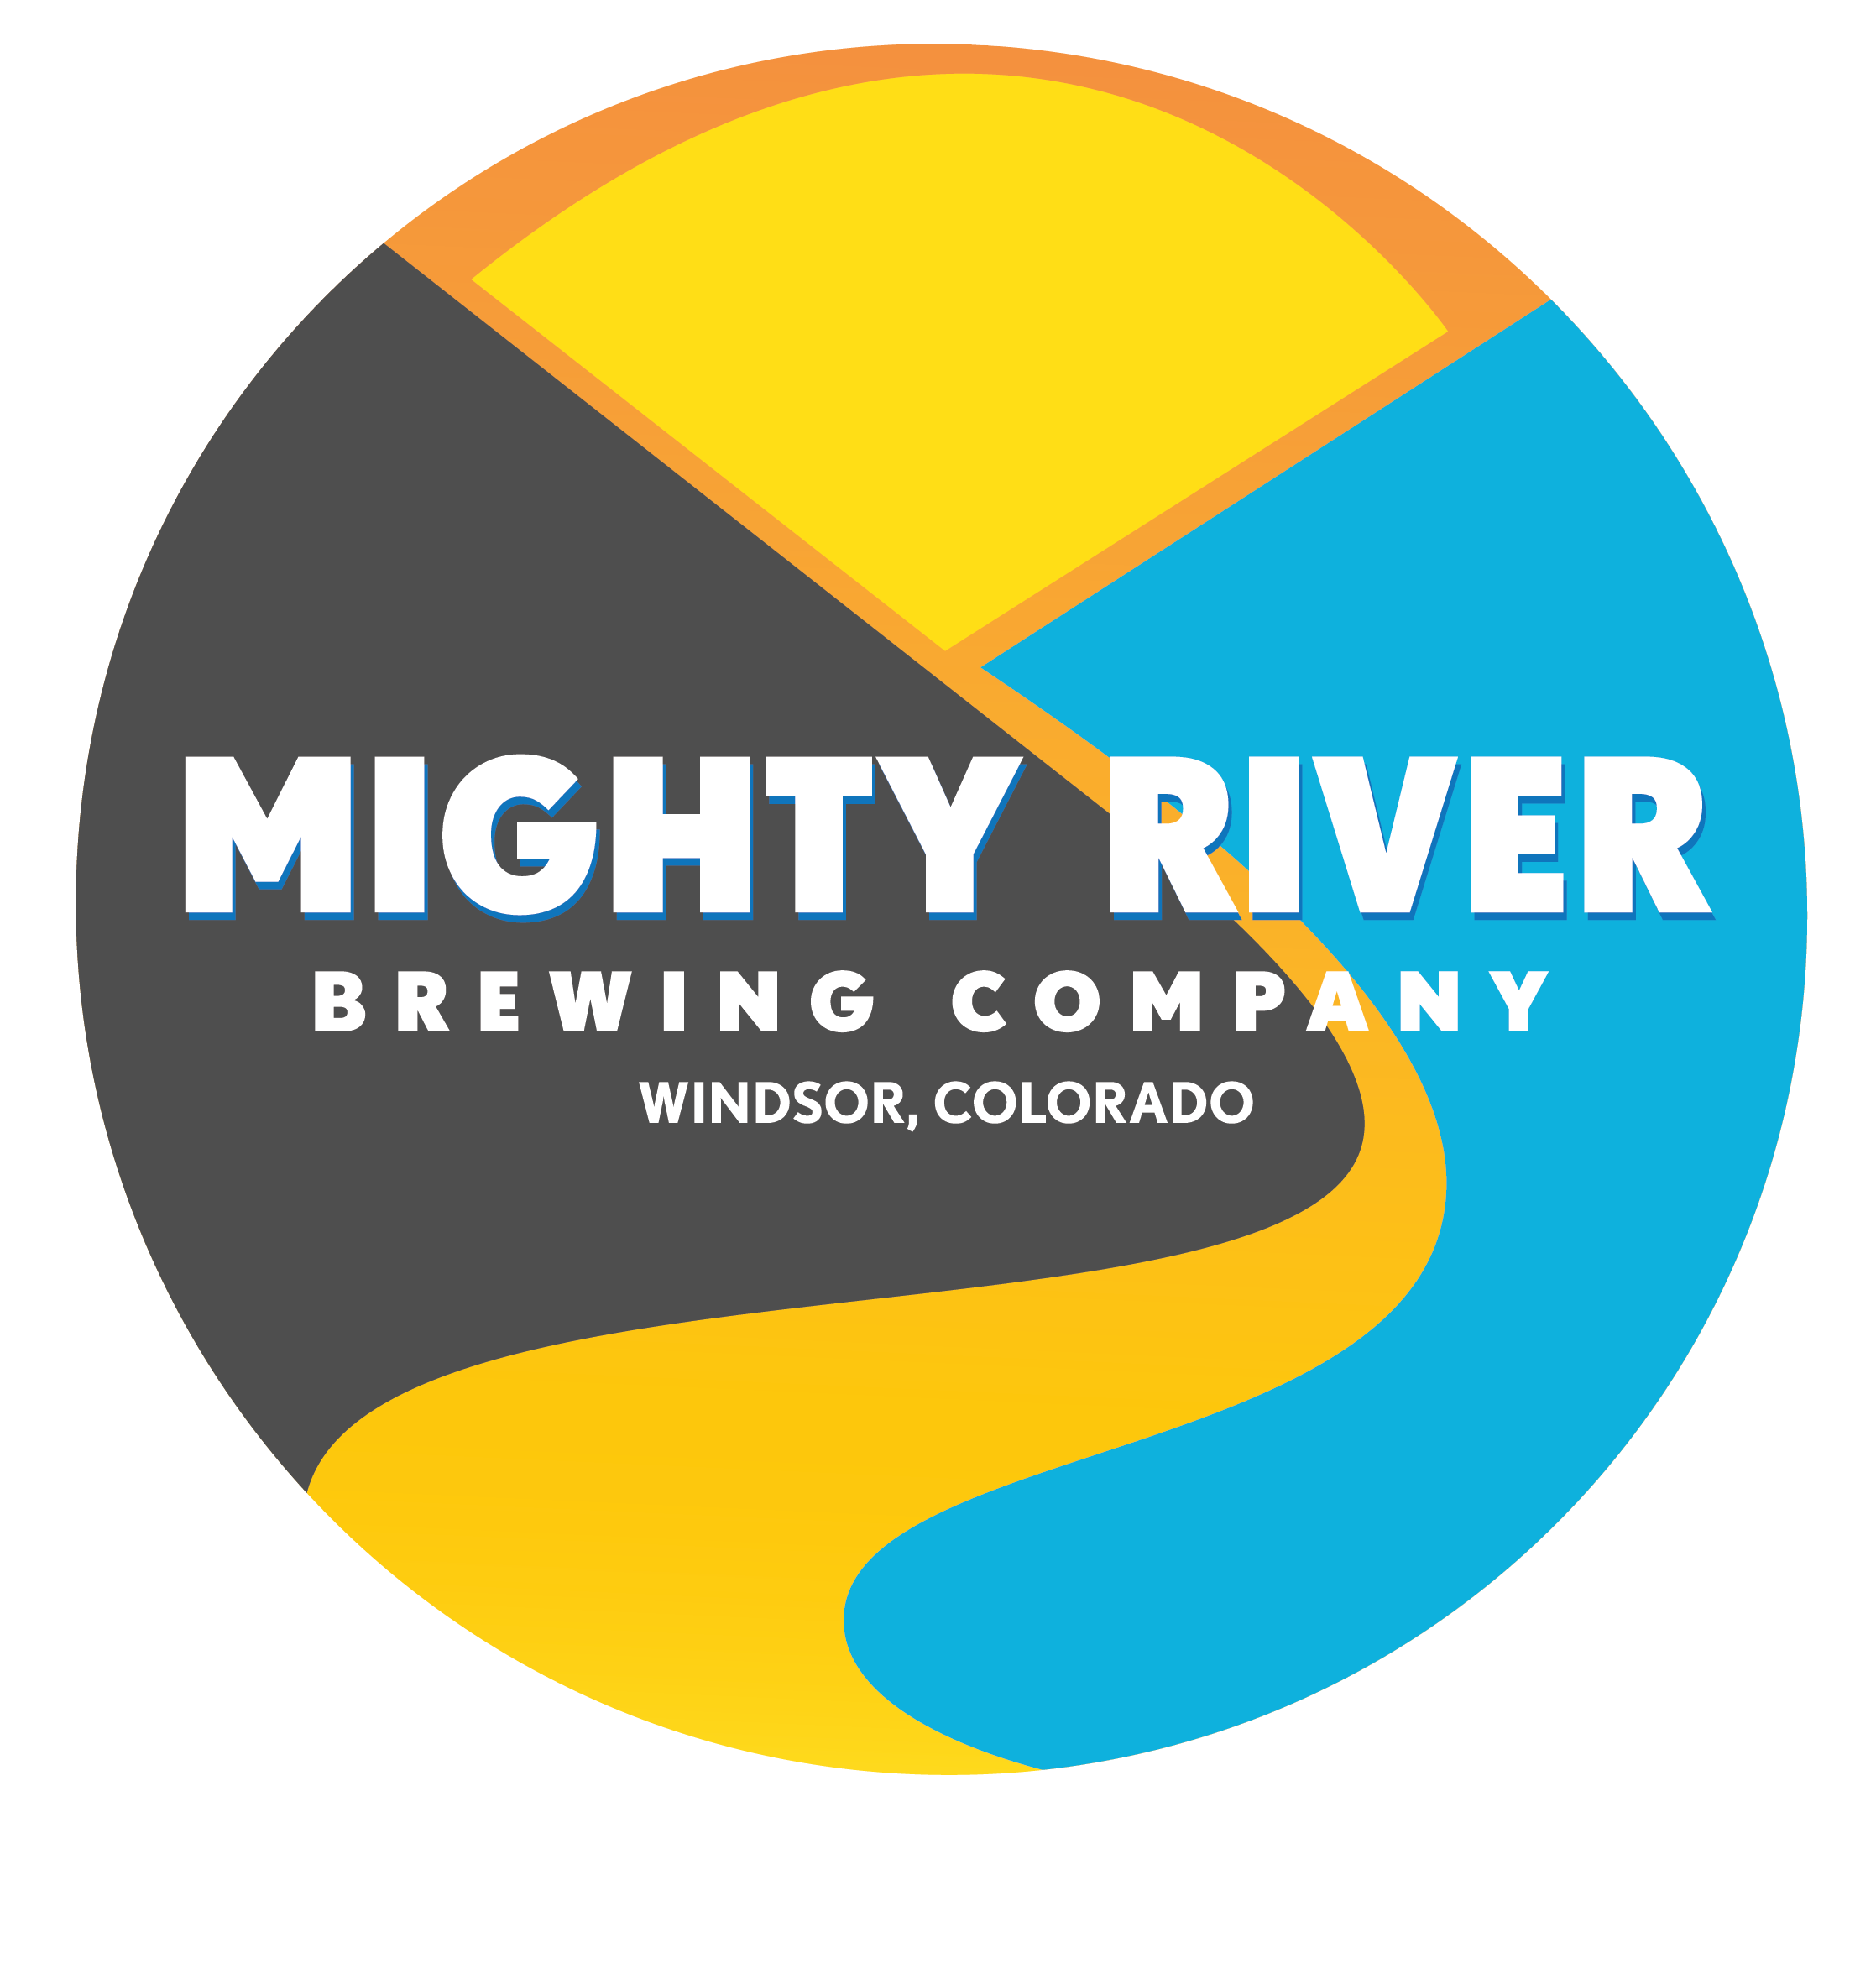 Mighty River Brewing Compay